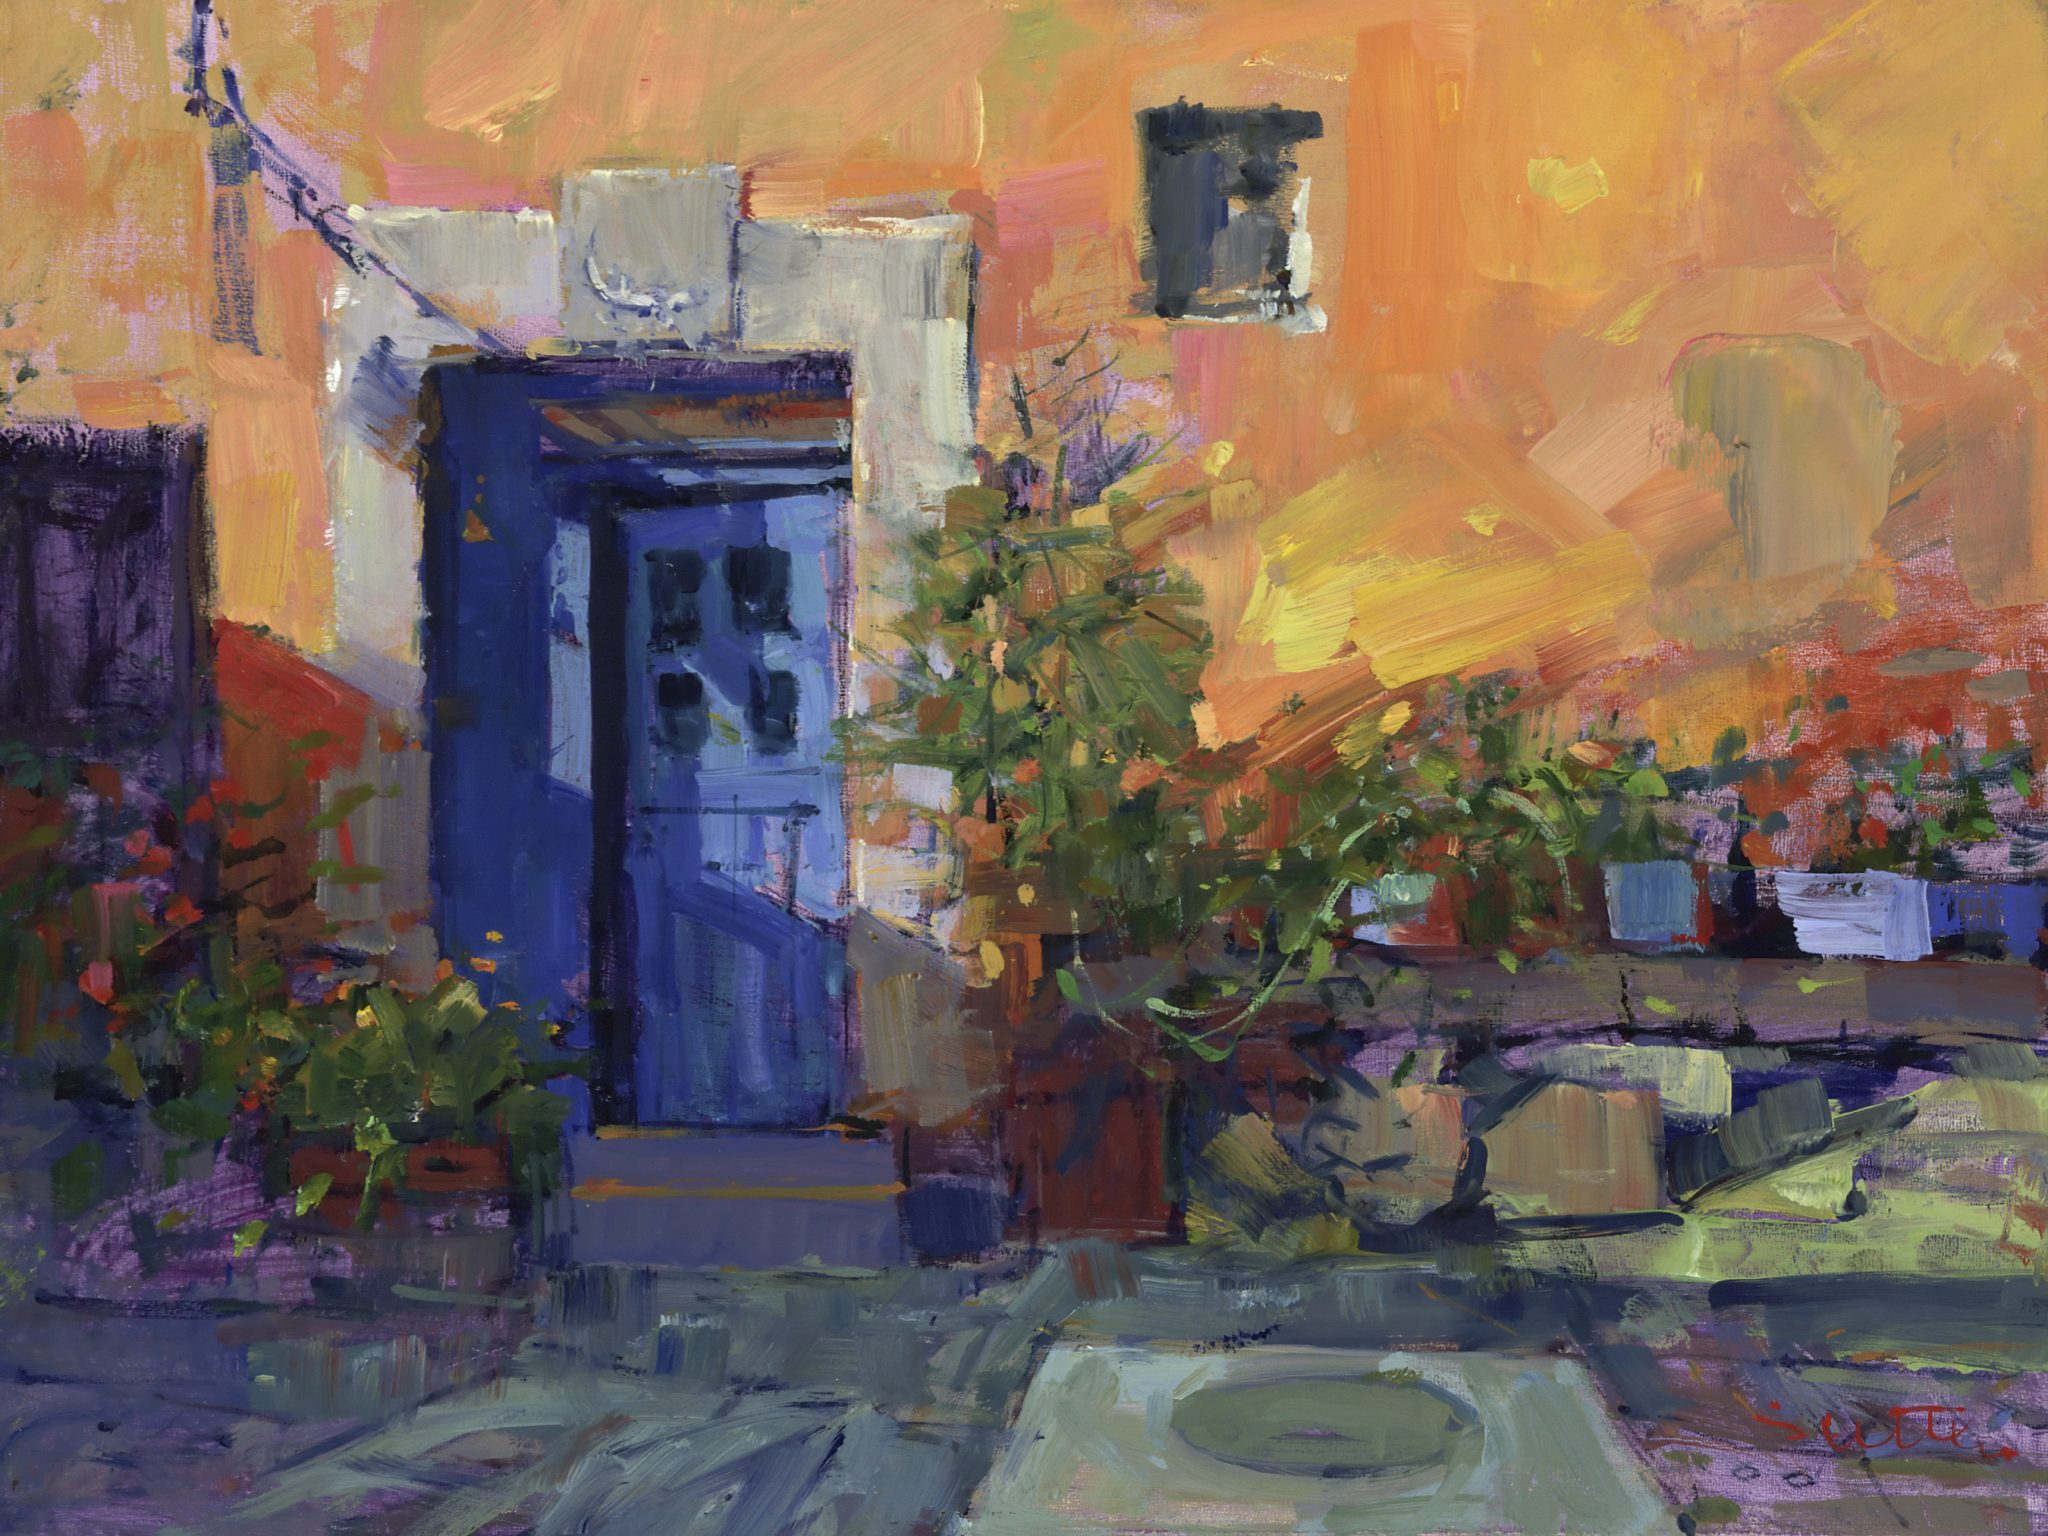 Bill Suttles The Blue Door oil on panel 12 x 16 in. & Bill Suttles   The District Gallery u0026 Framery pezcame.com